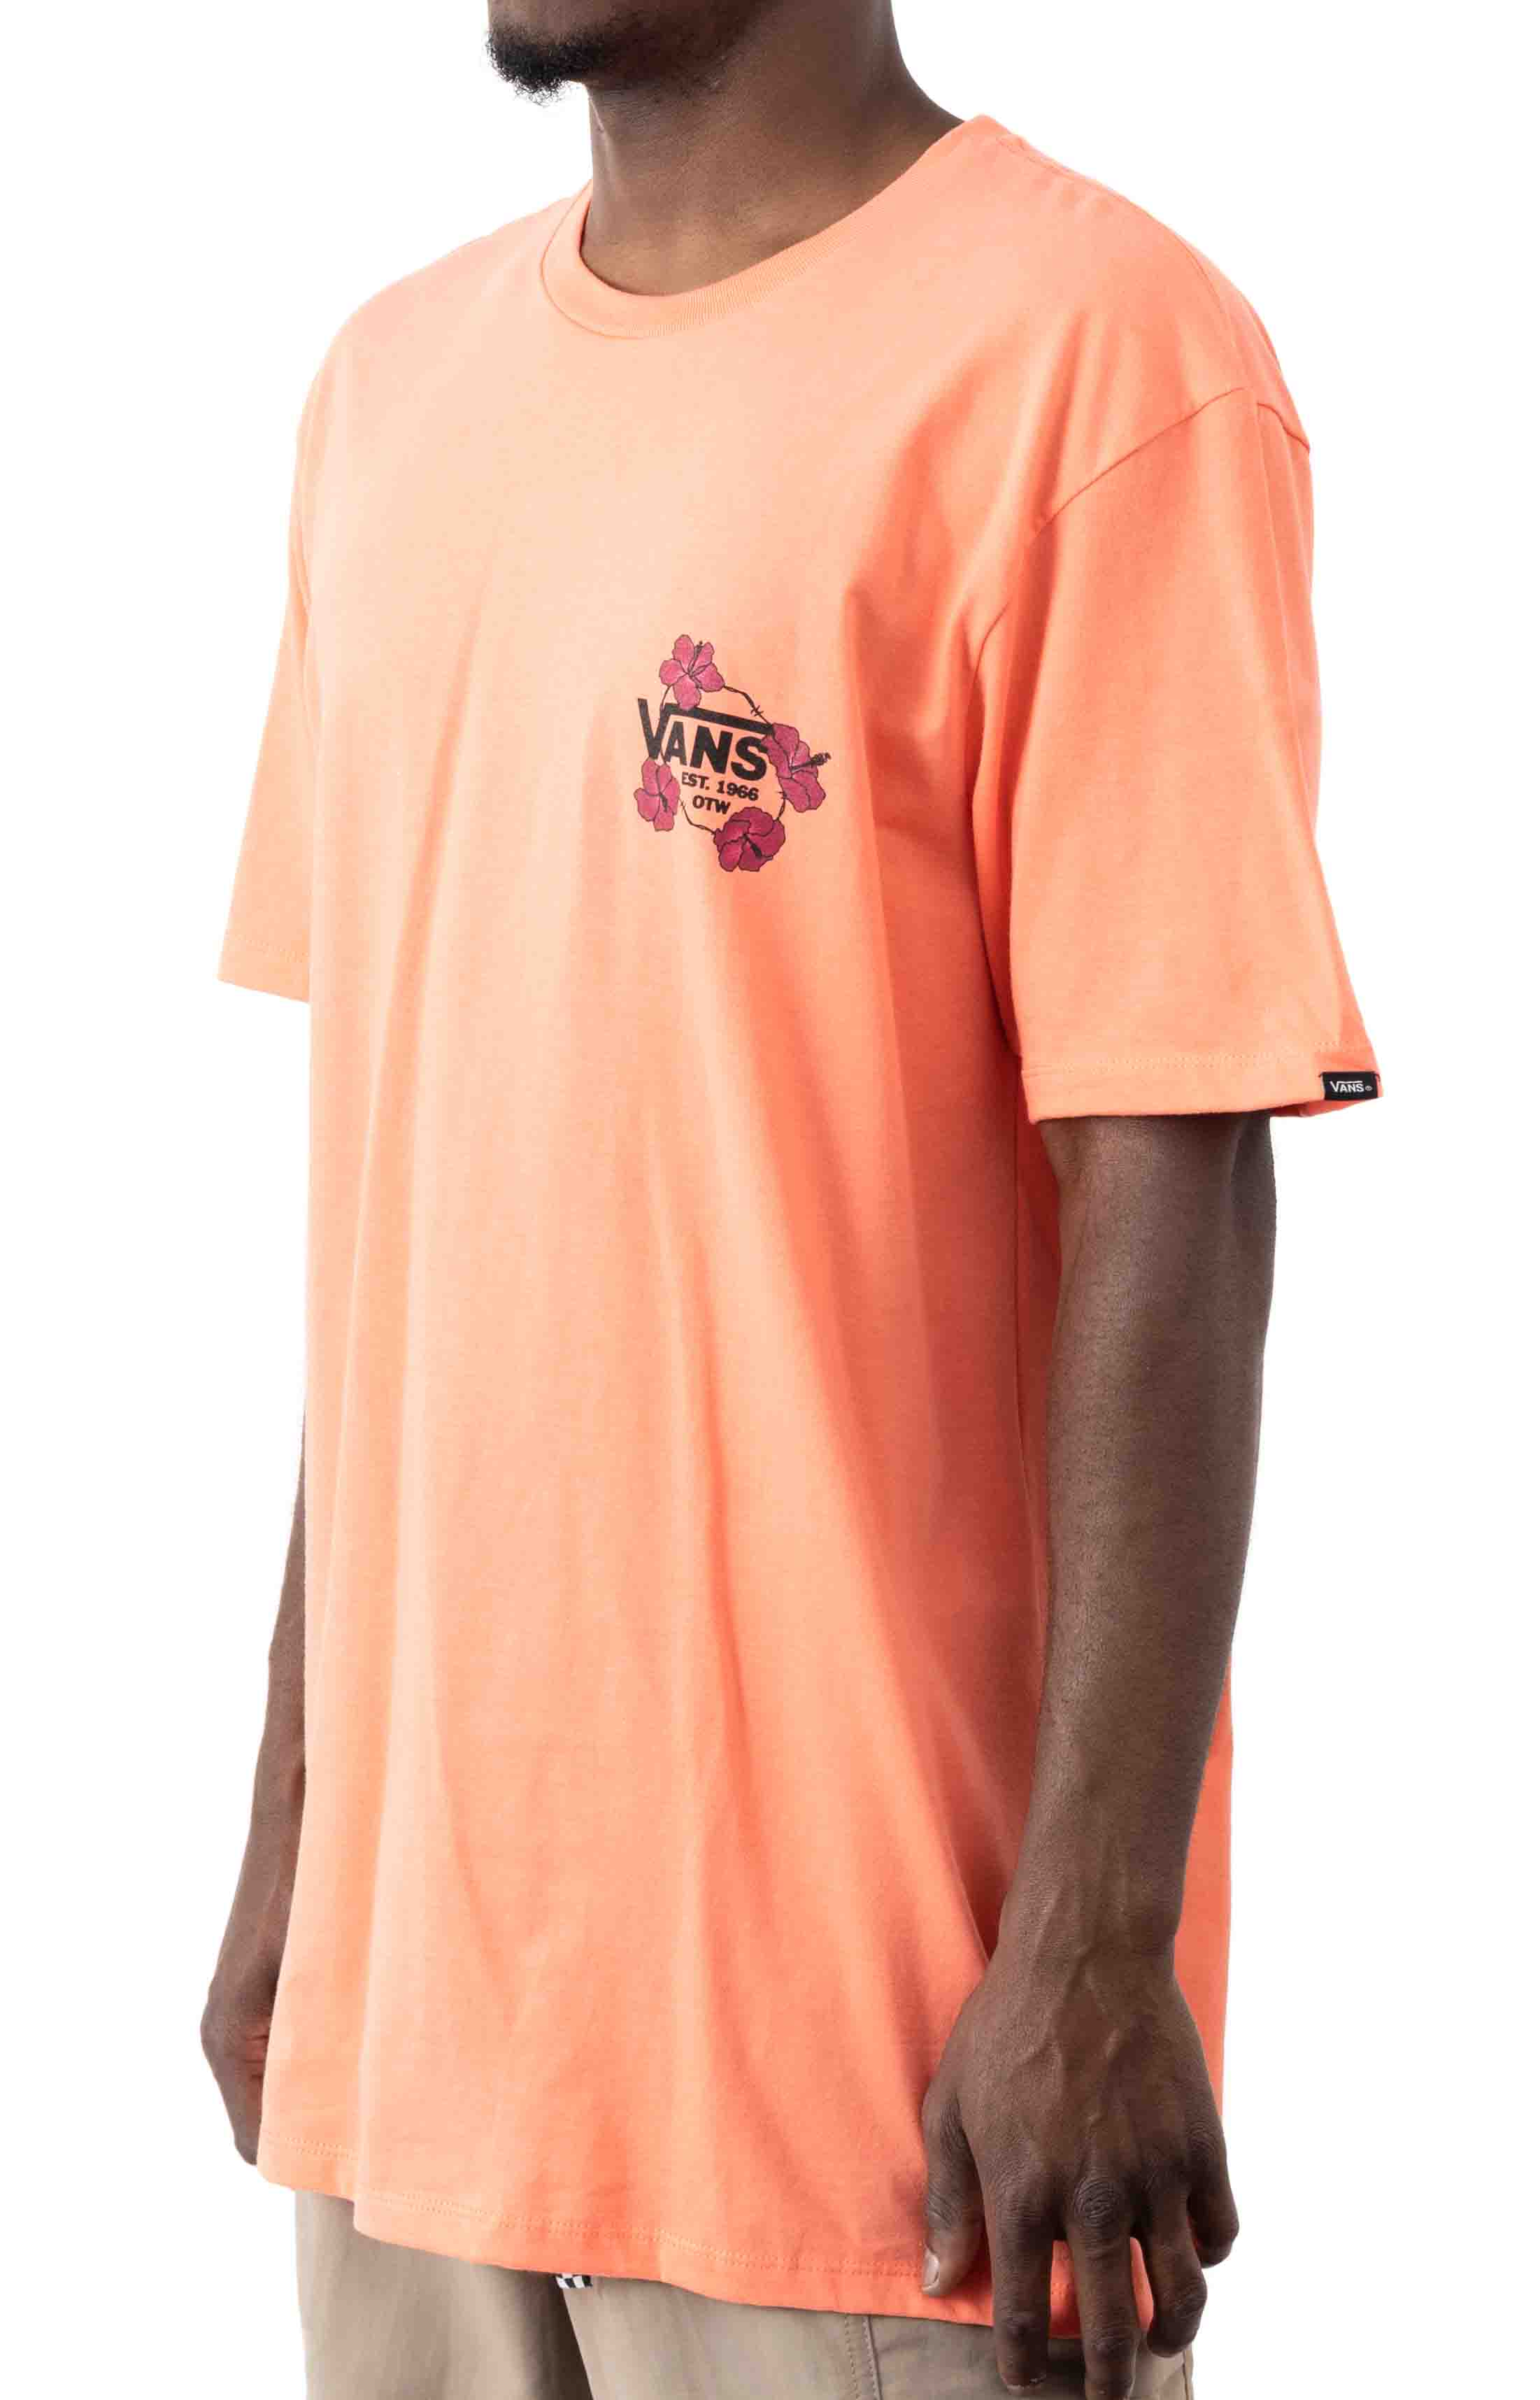 Lei'd To Rest T-Shirt - Fusion Coral  2